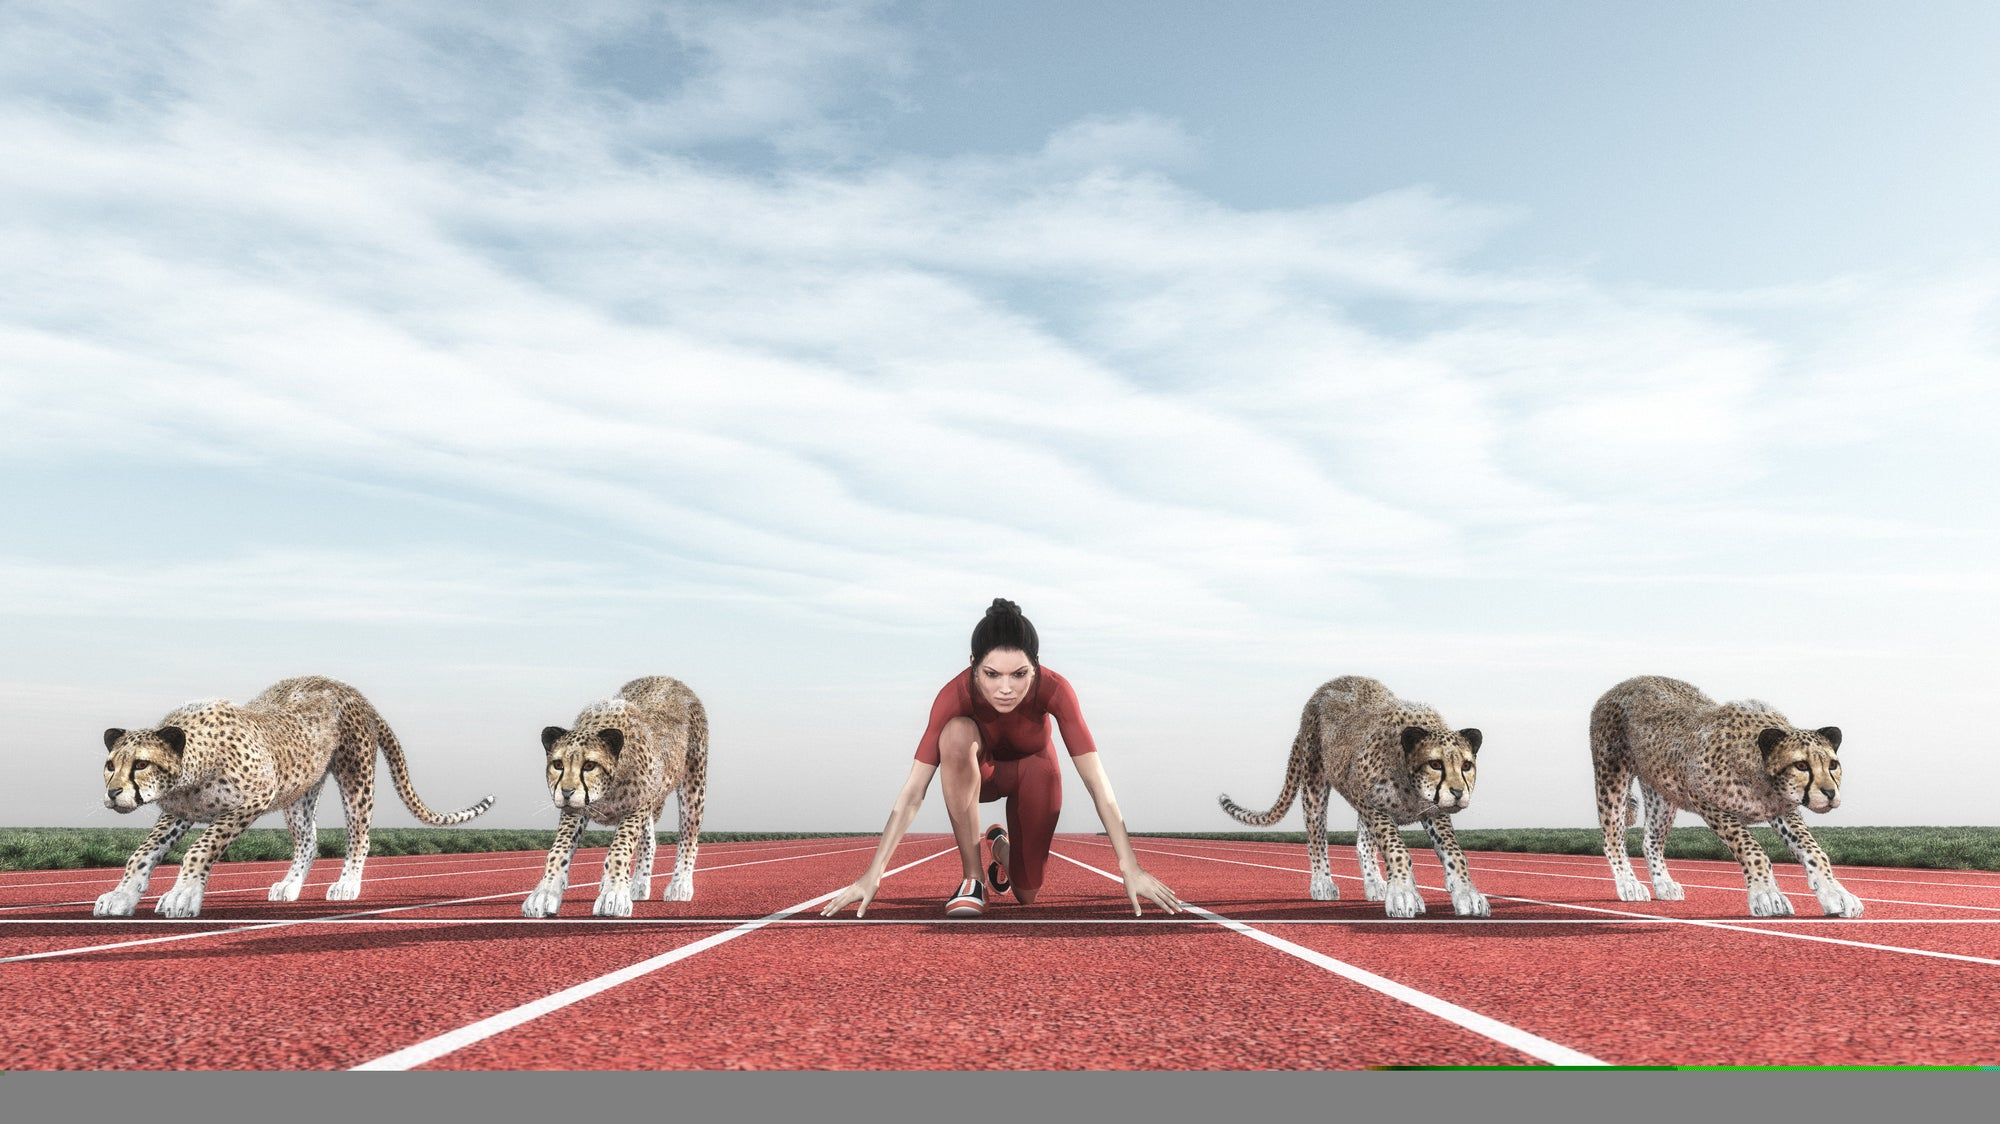 woman with cheetahs on track